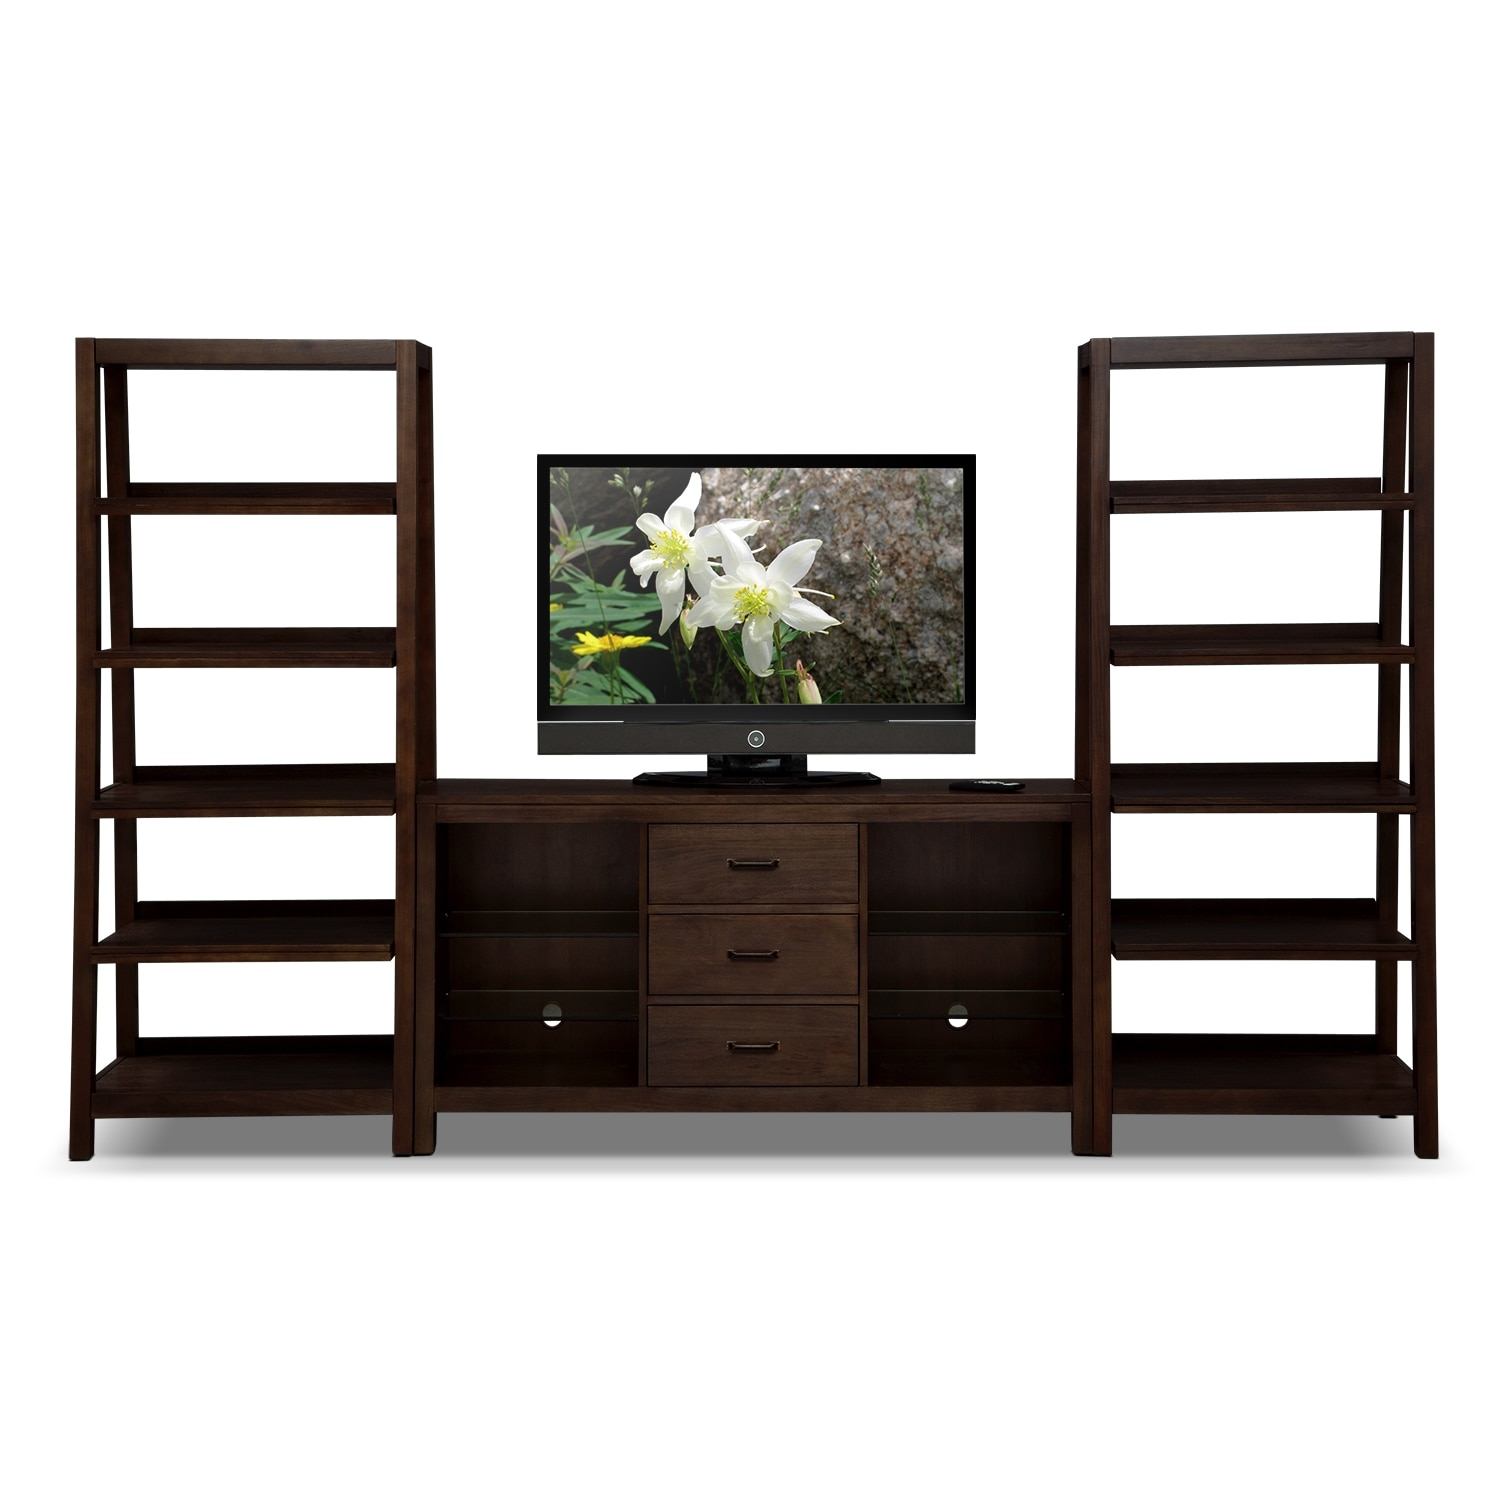 Camryn Entertainment Furniture 3 Pc Entertainment Wall